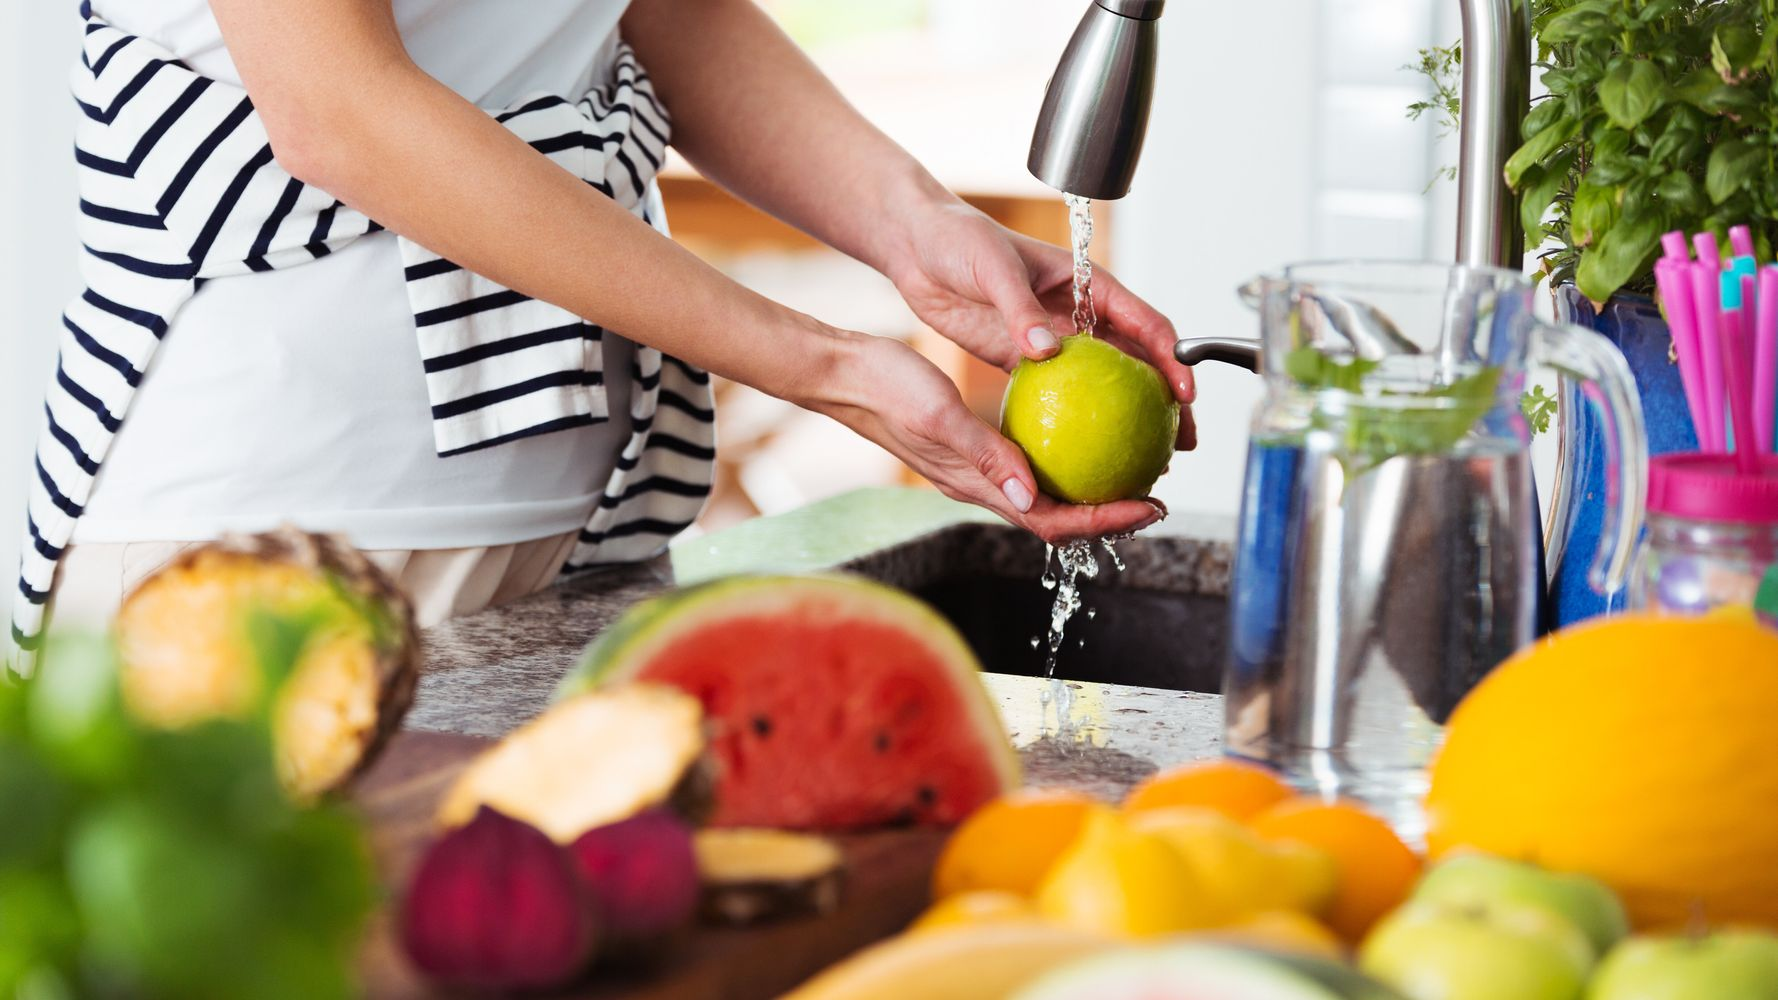 How to Wash Fruits and Vegetables: A Complete Guide